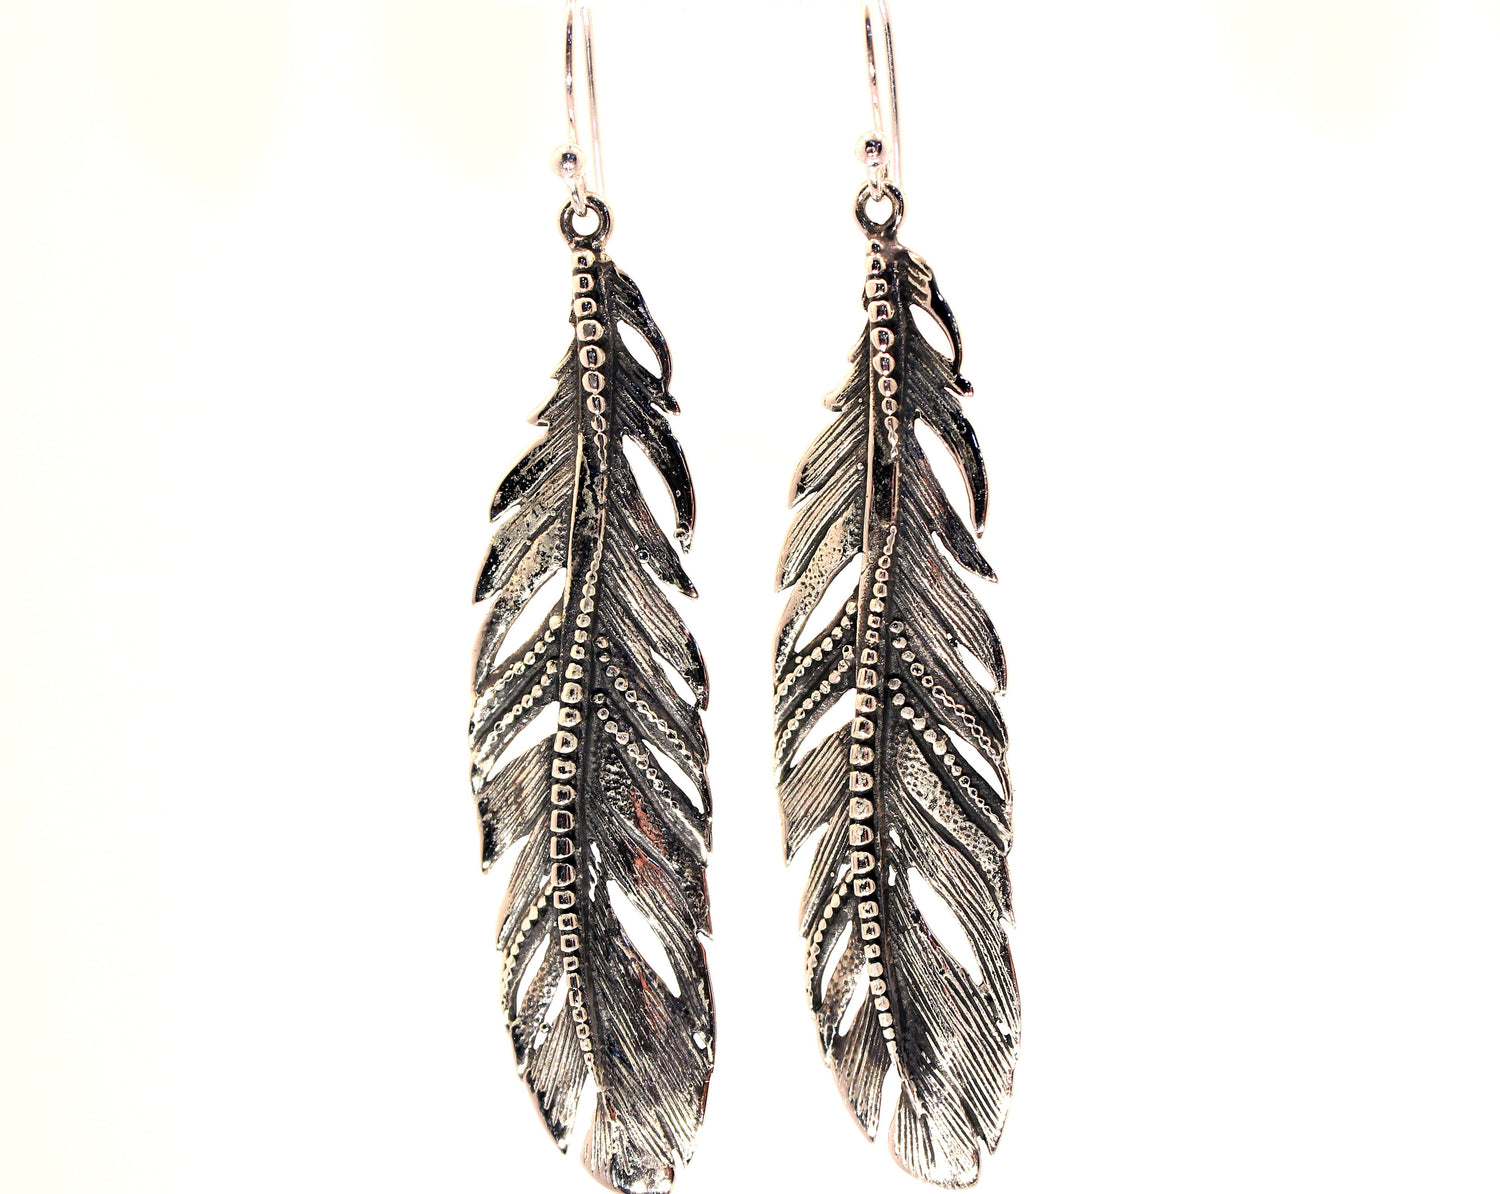 Hand Made Sterling Silver Feather Earrings 2 Sizes